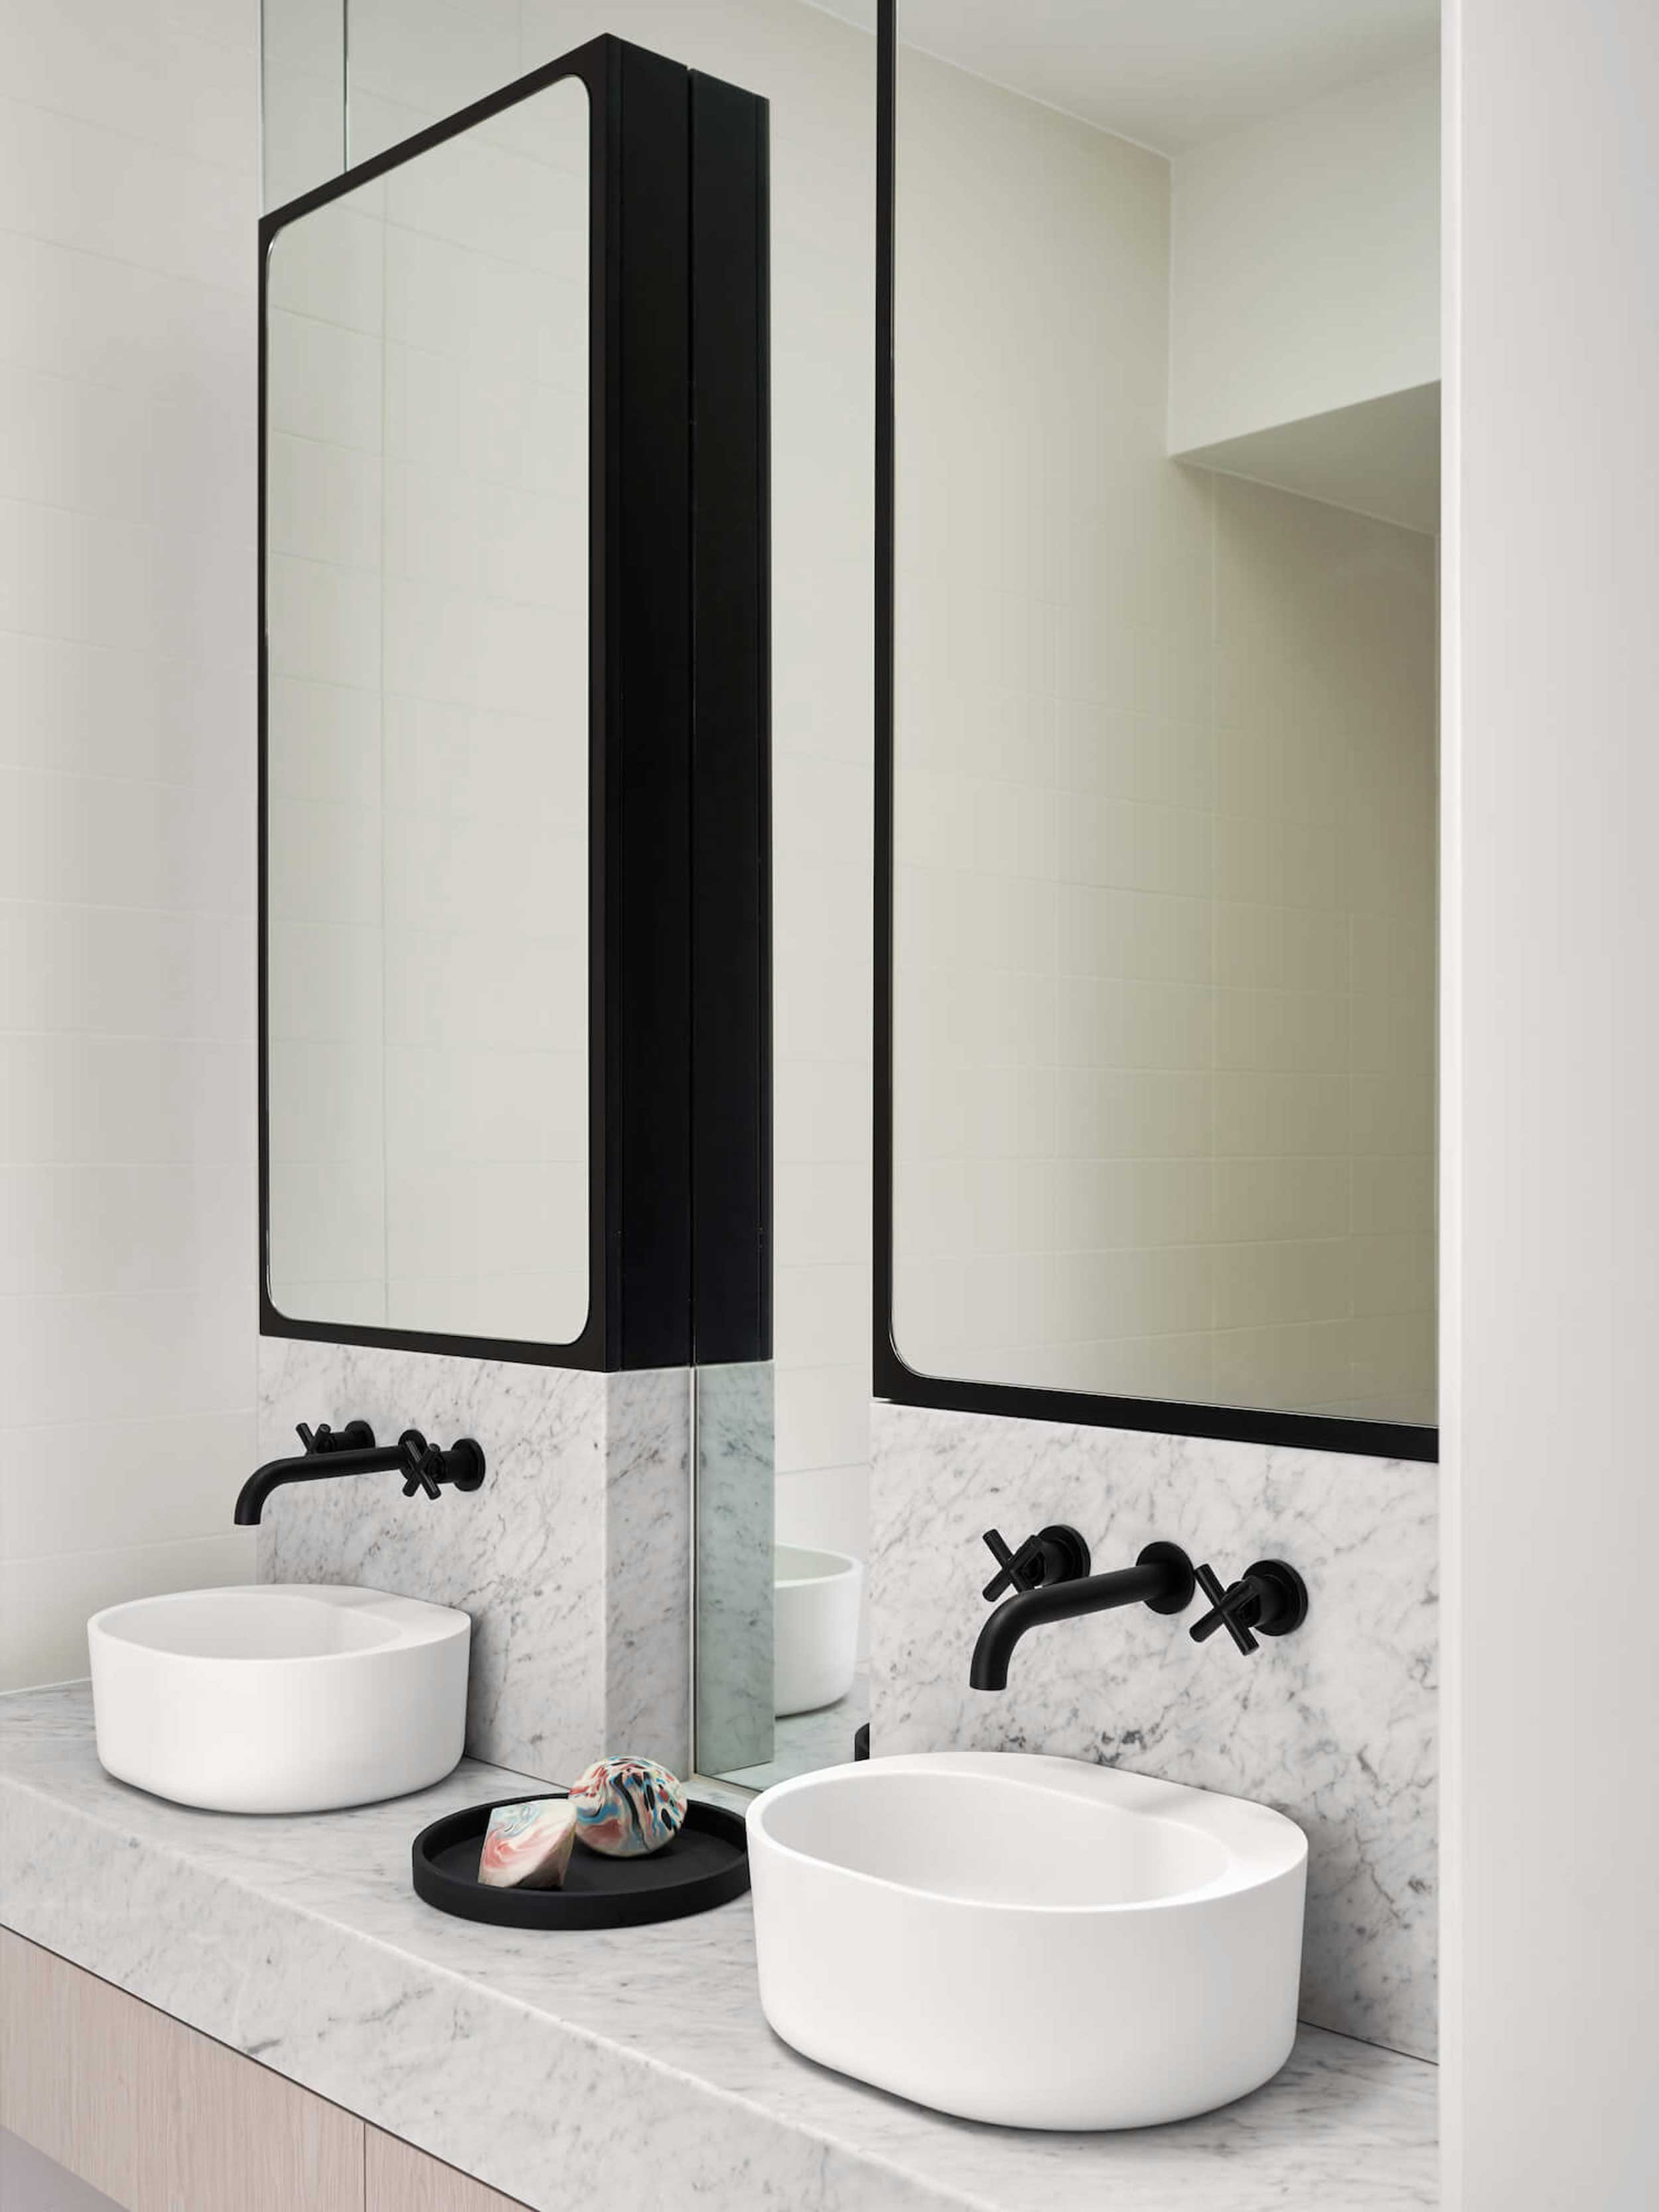 3 Door Medicine Cabinets with Mirrors Elegant why Designers Hate Most Medicine Cabinets some Genius